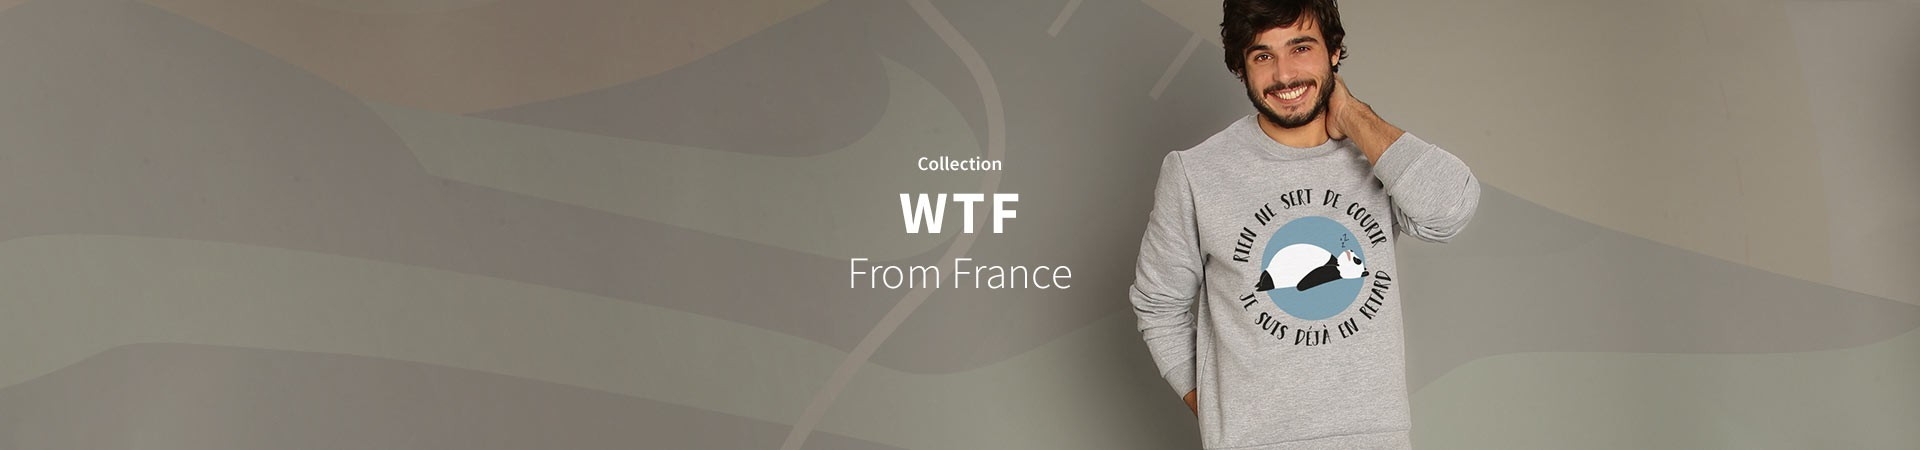 Collection WTF